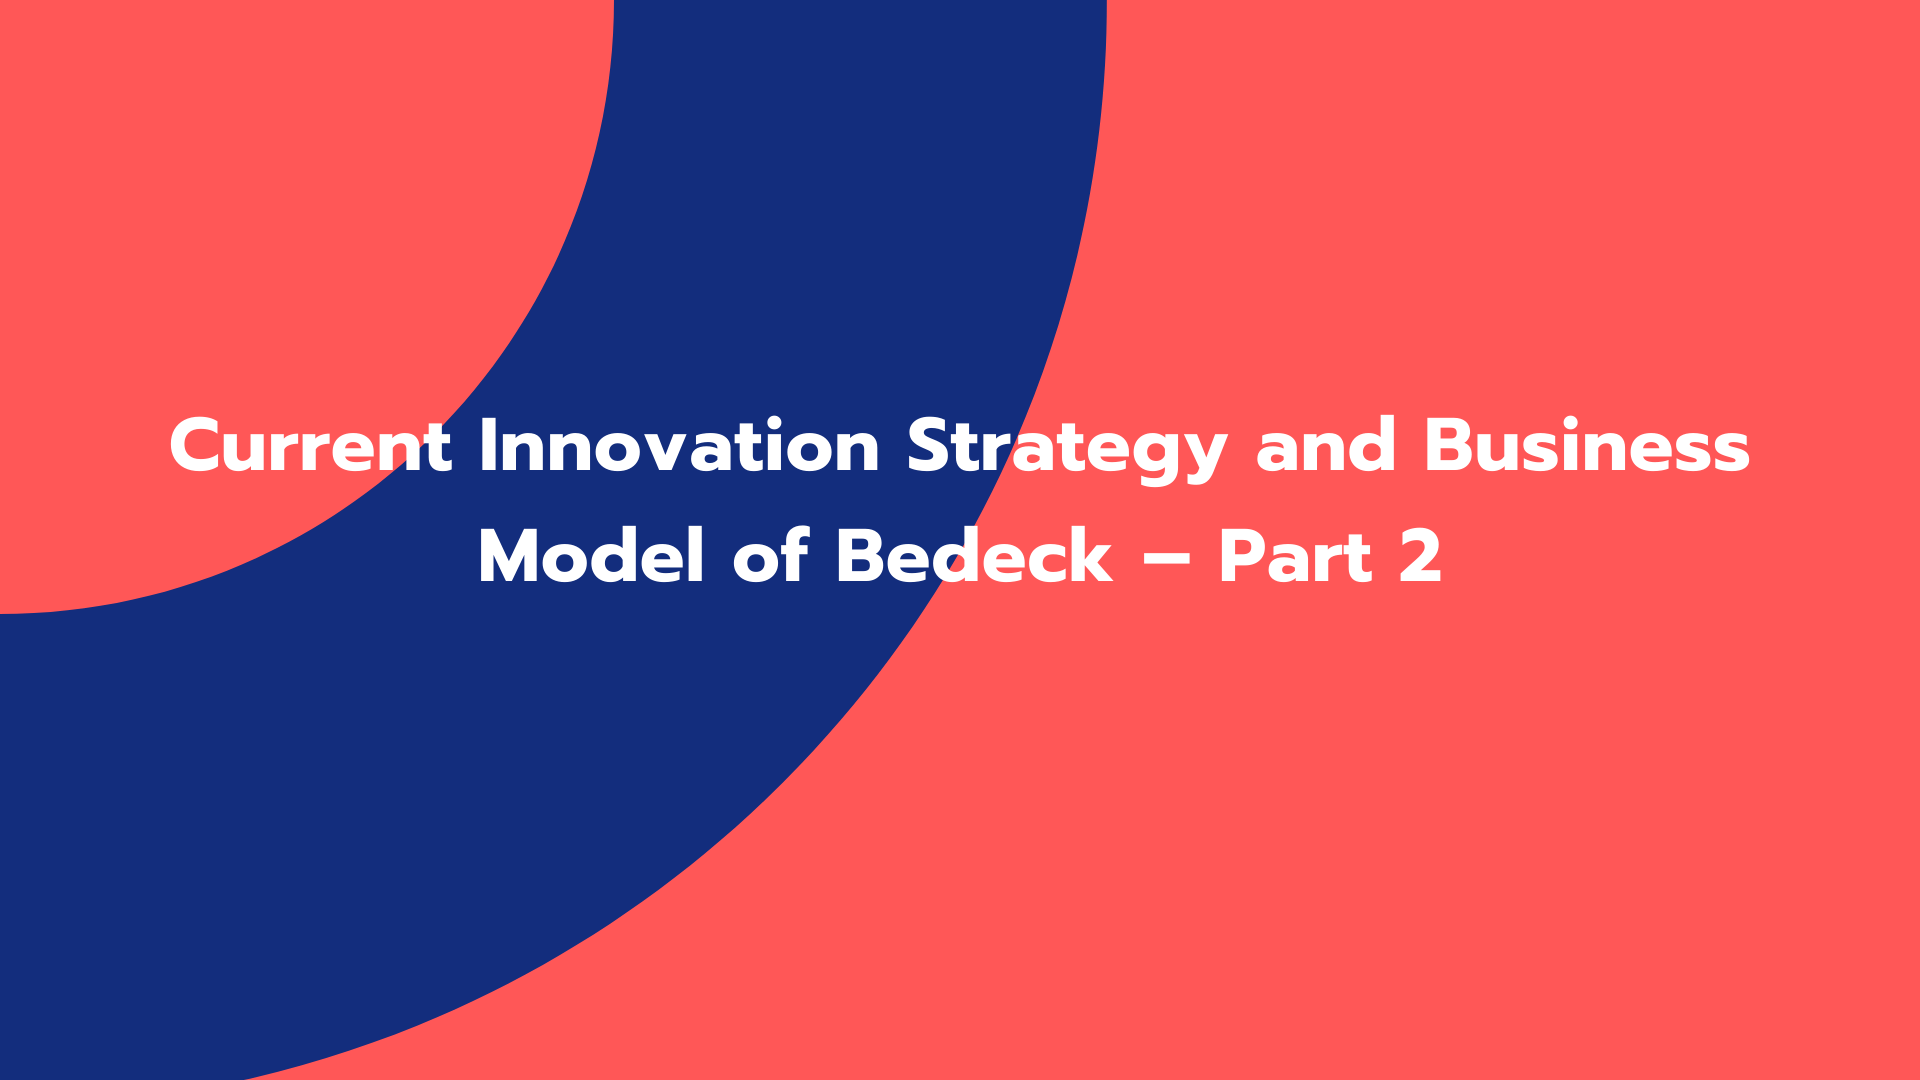 Current Innovation Strategy and Business Model of Bedeck – Part 2